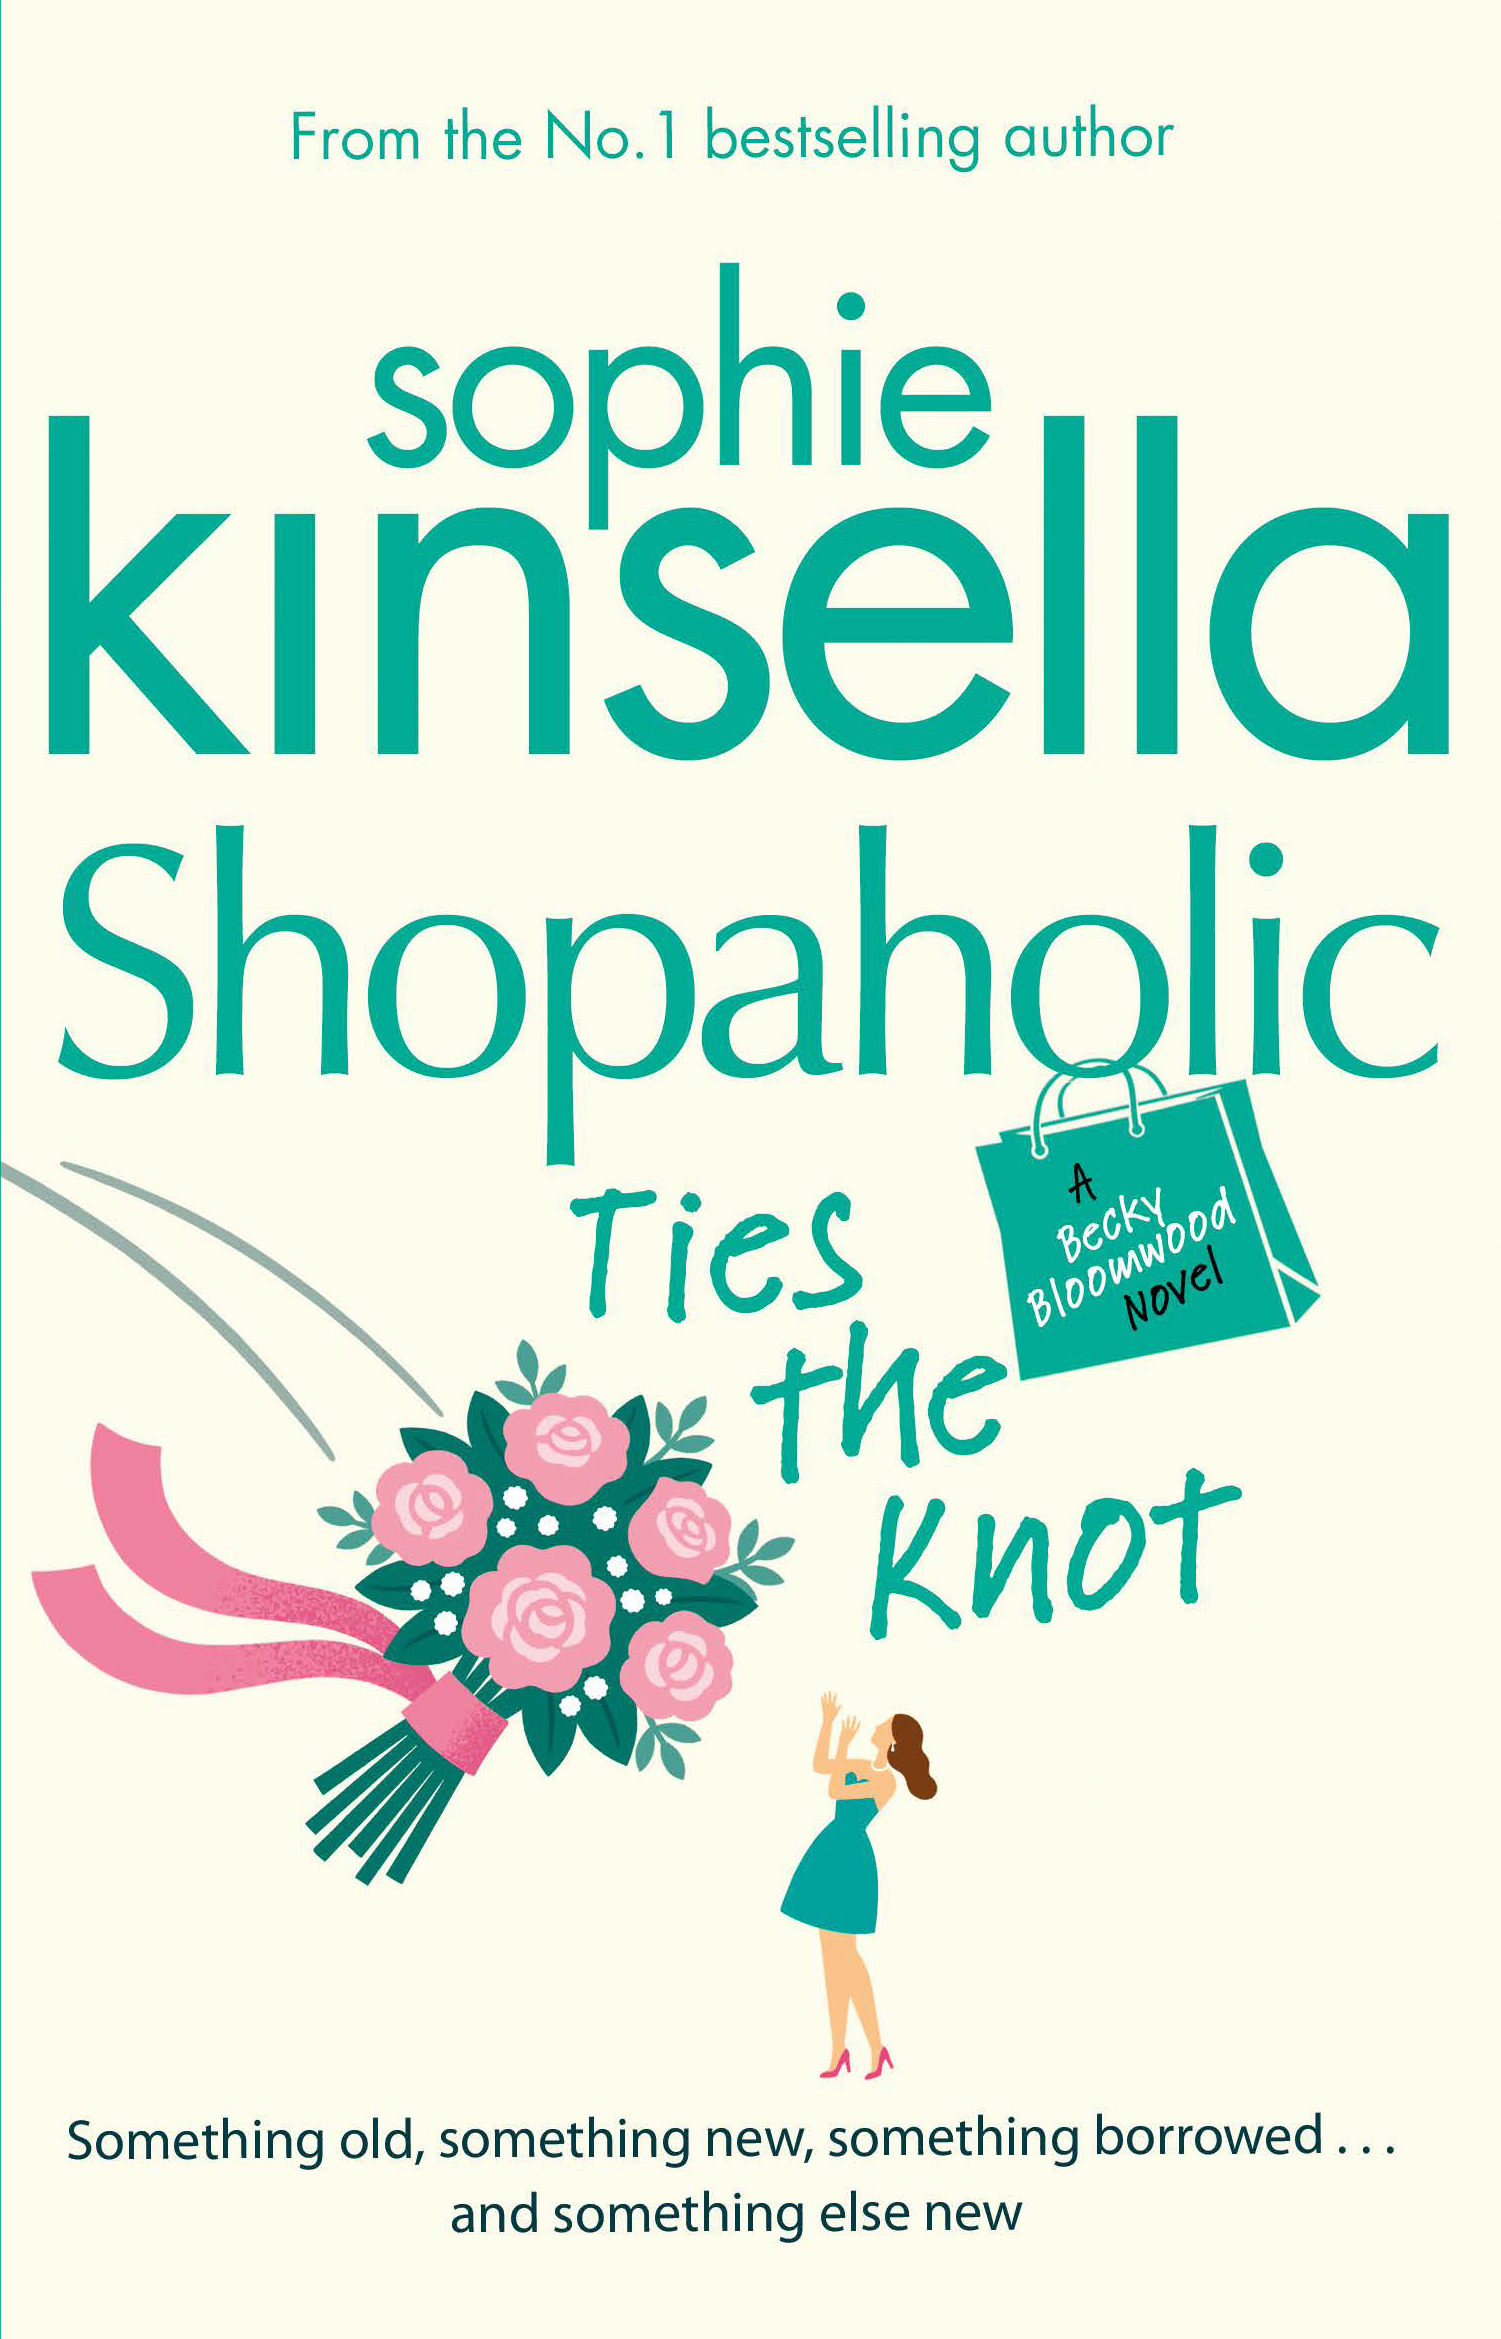 3. Shopaholic Ties The Knot